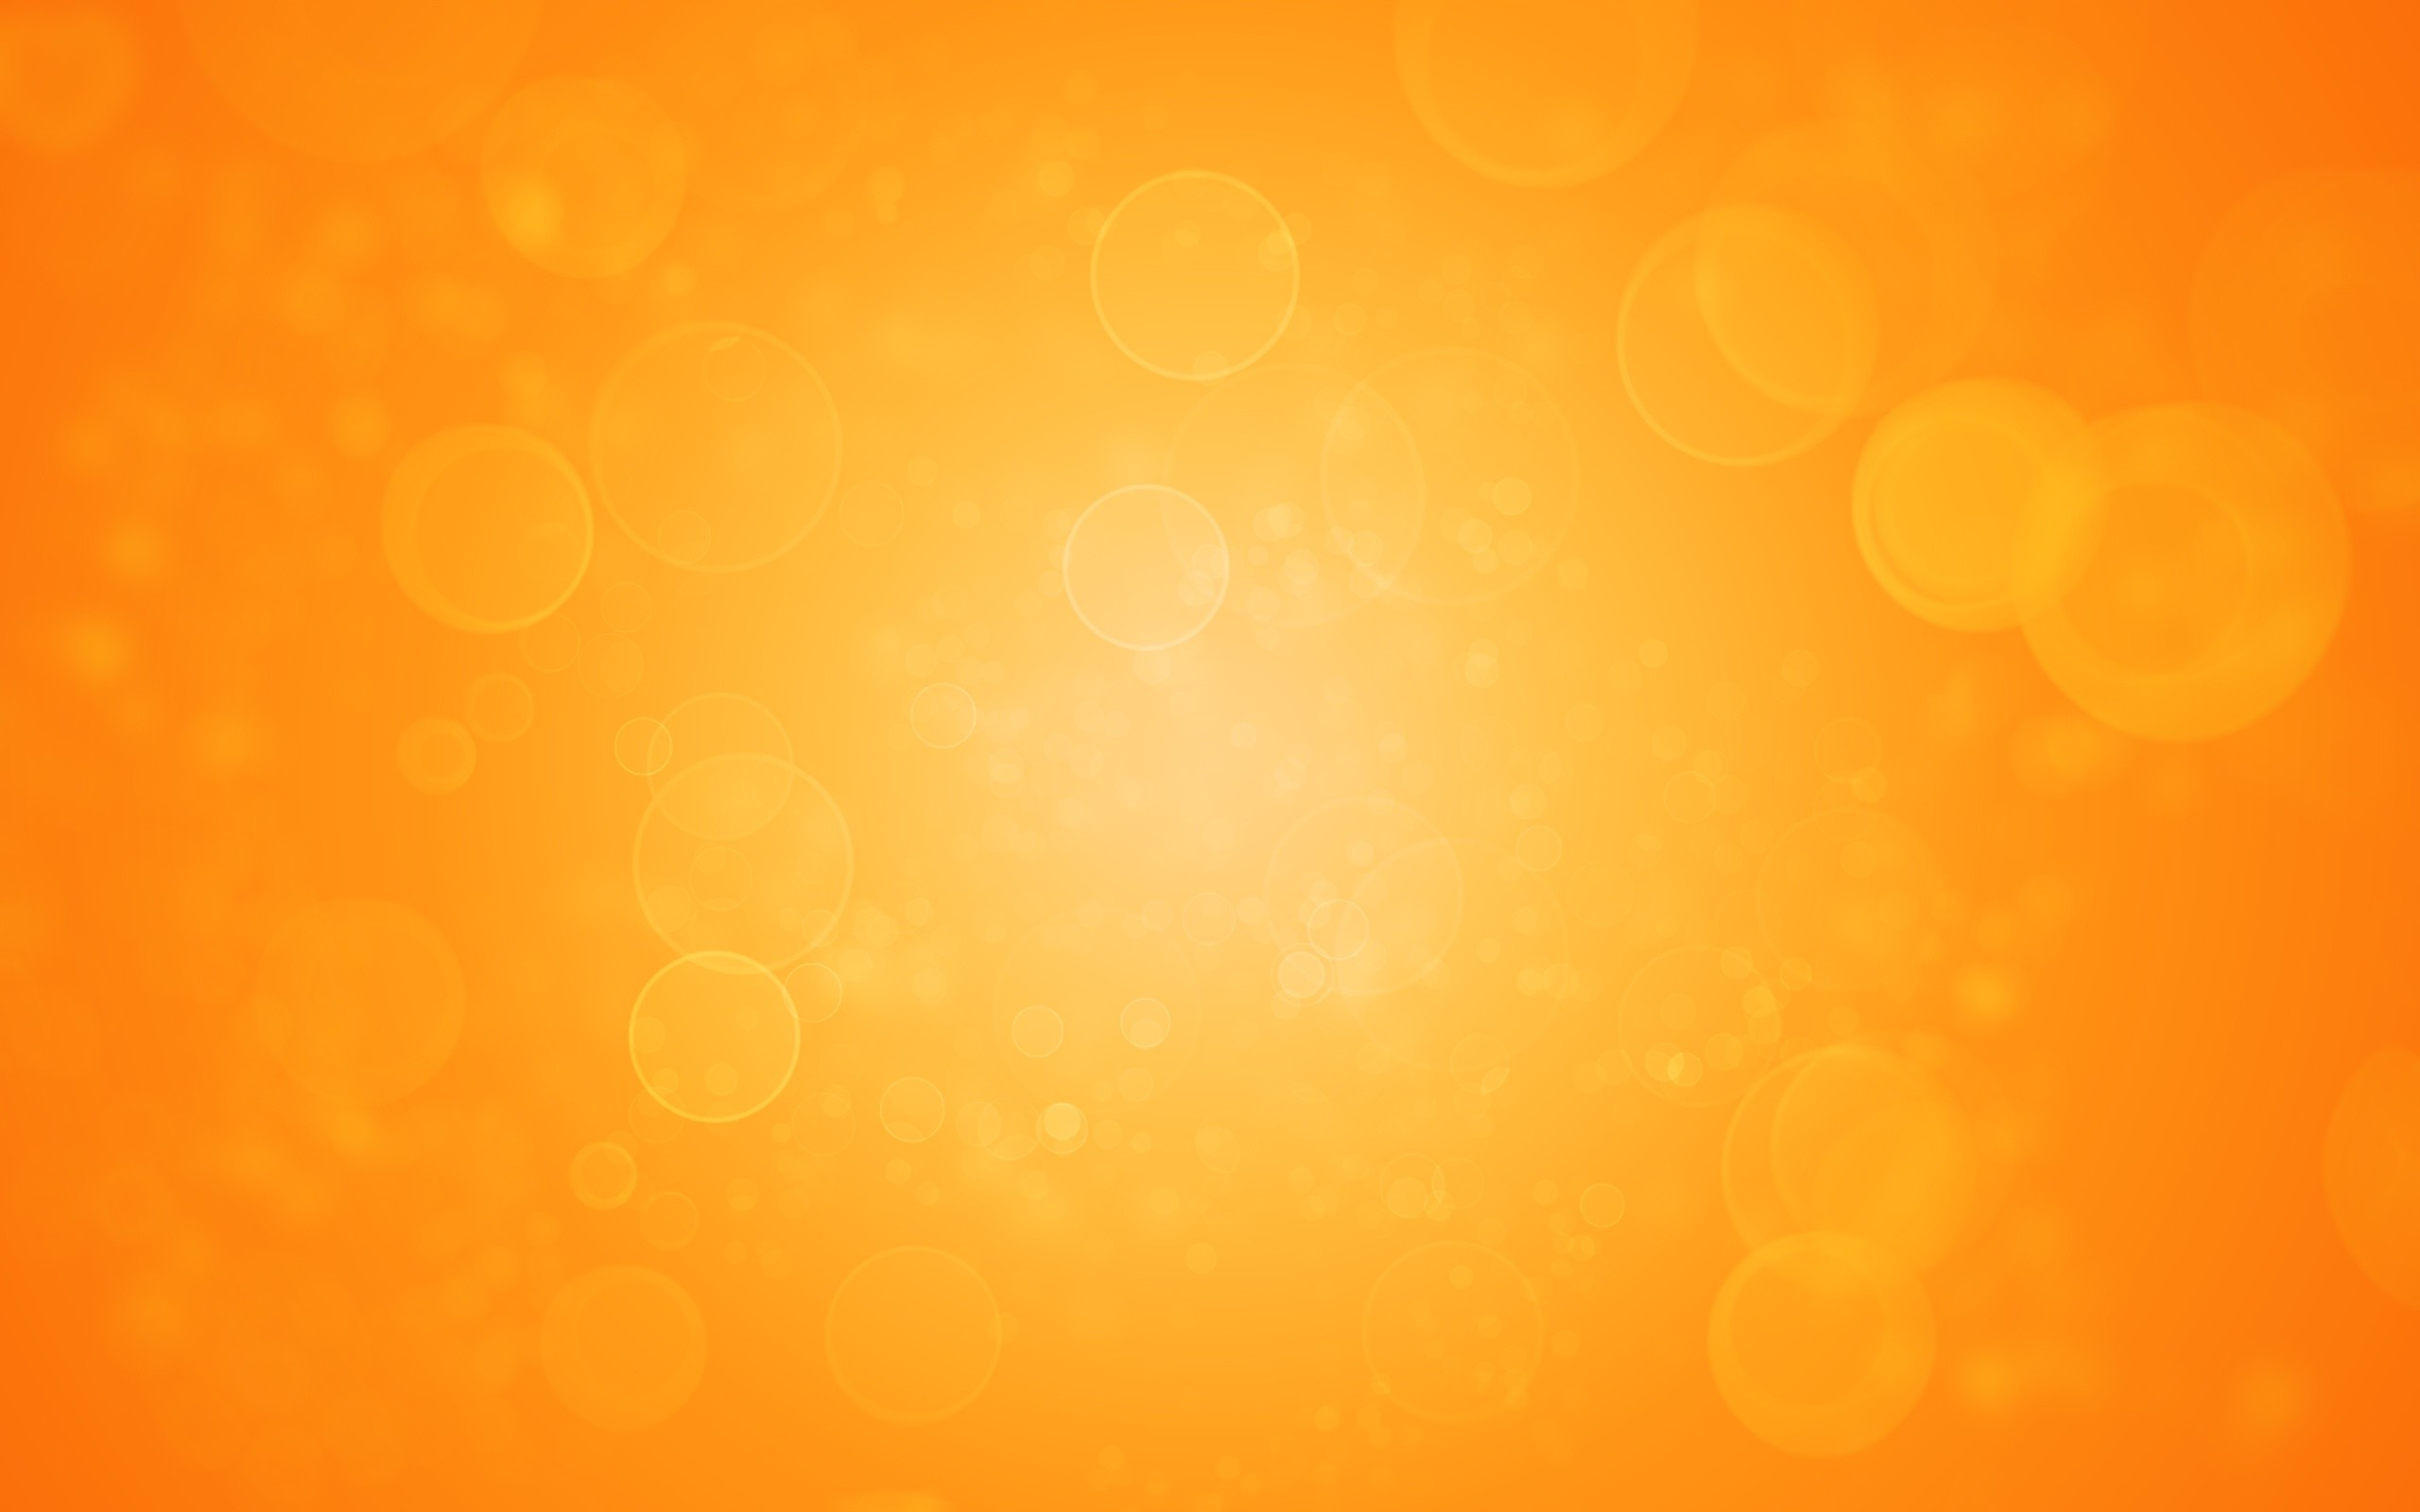 Orange and Yellow Wallpaper 69 images